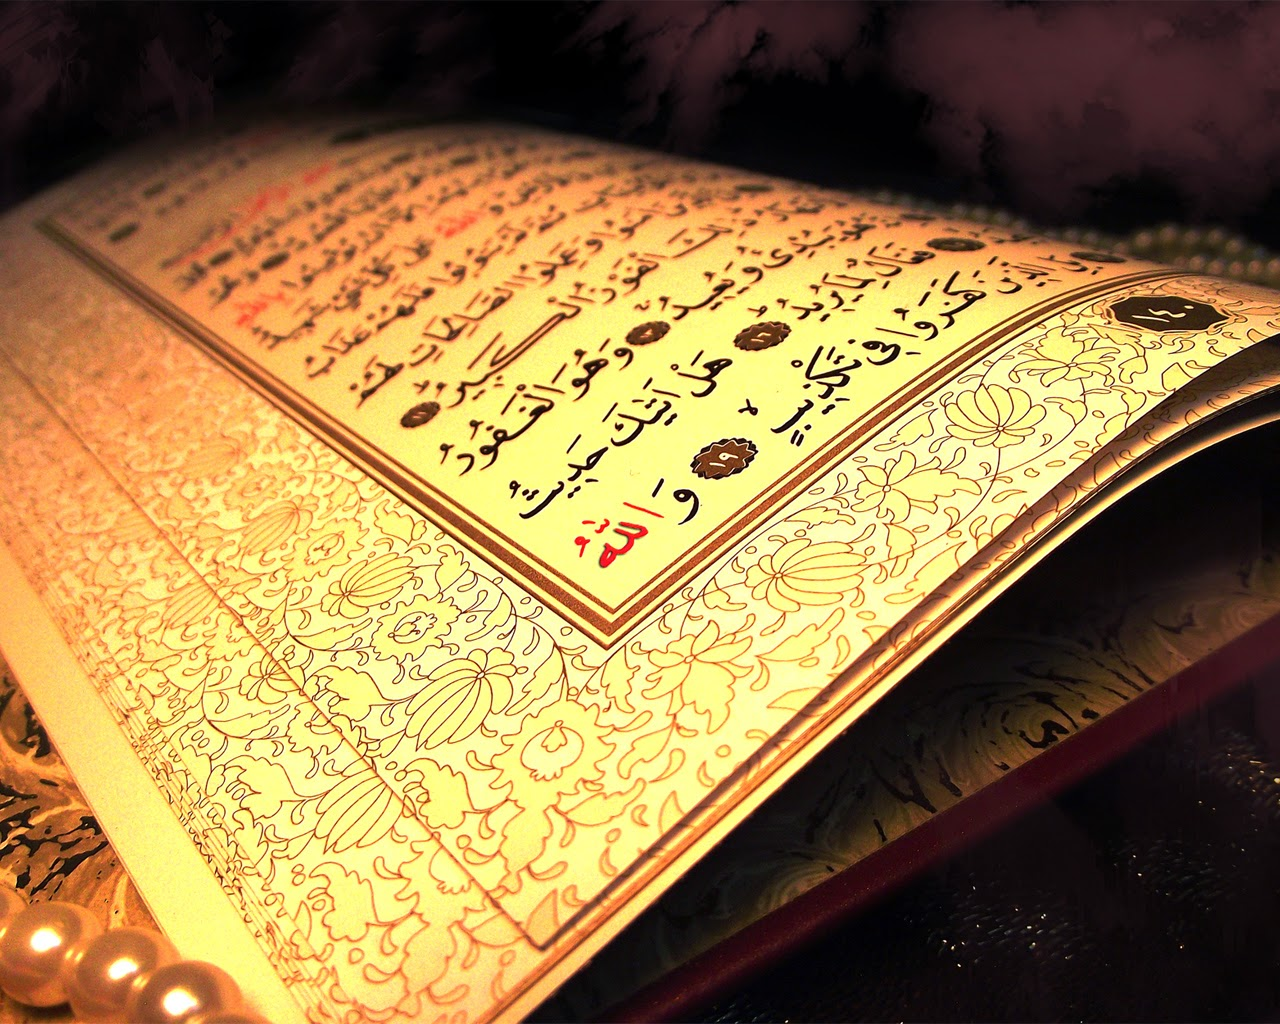 Hd wallpaper quran - The Verses Of Quran With Allah Wallpapers